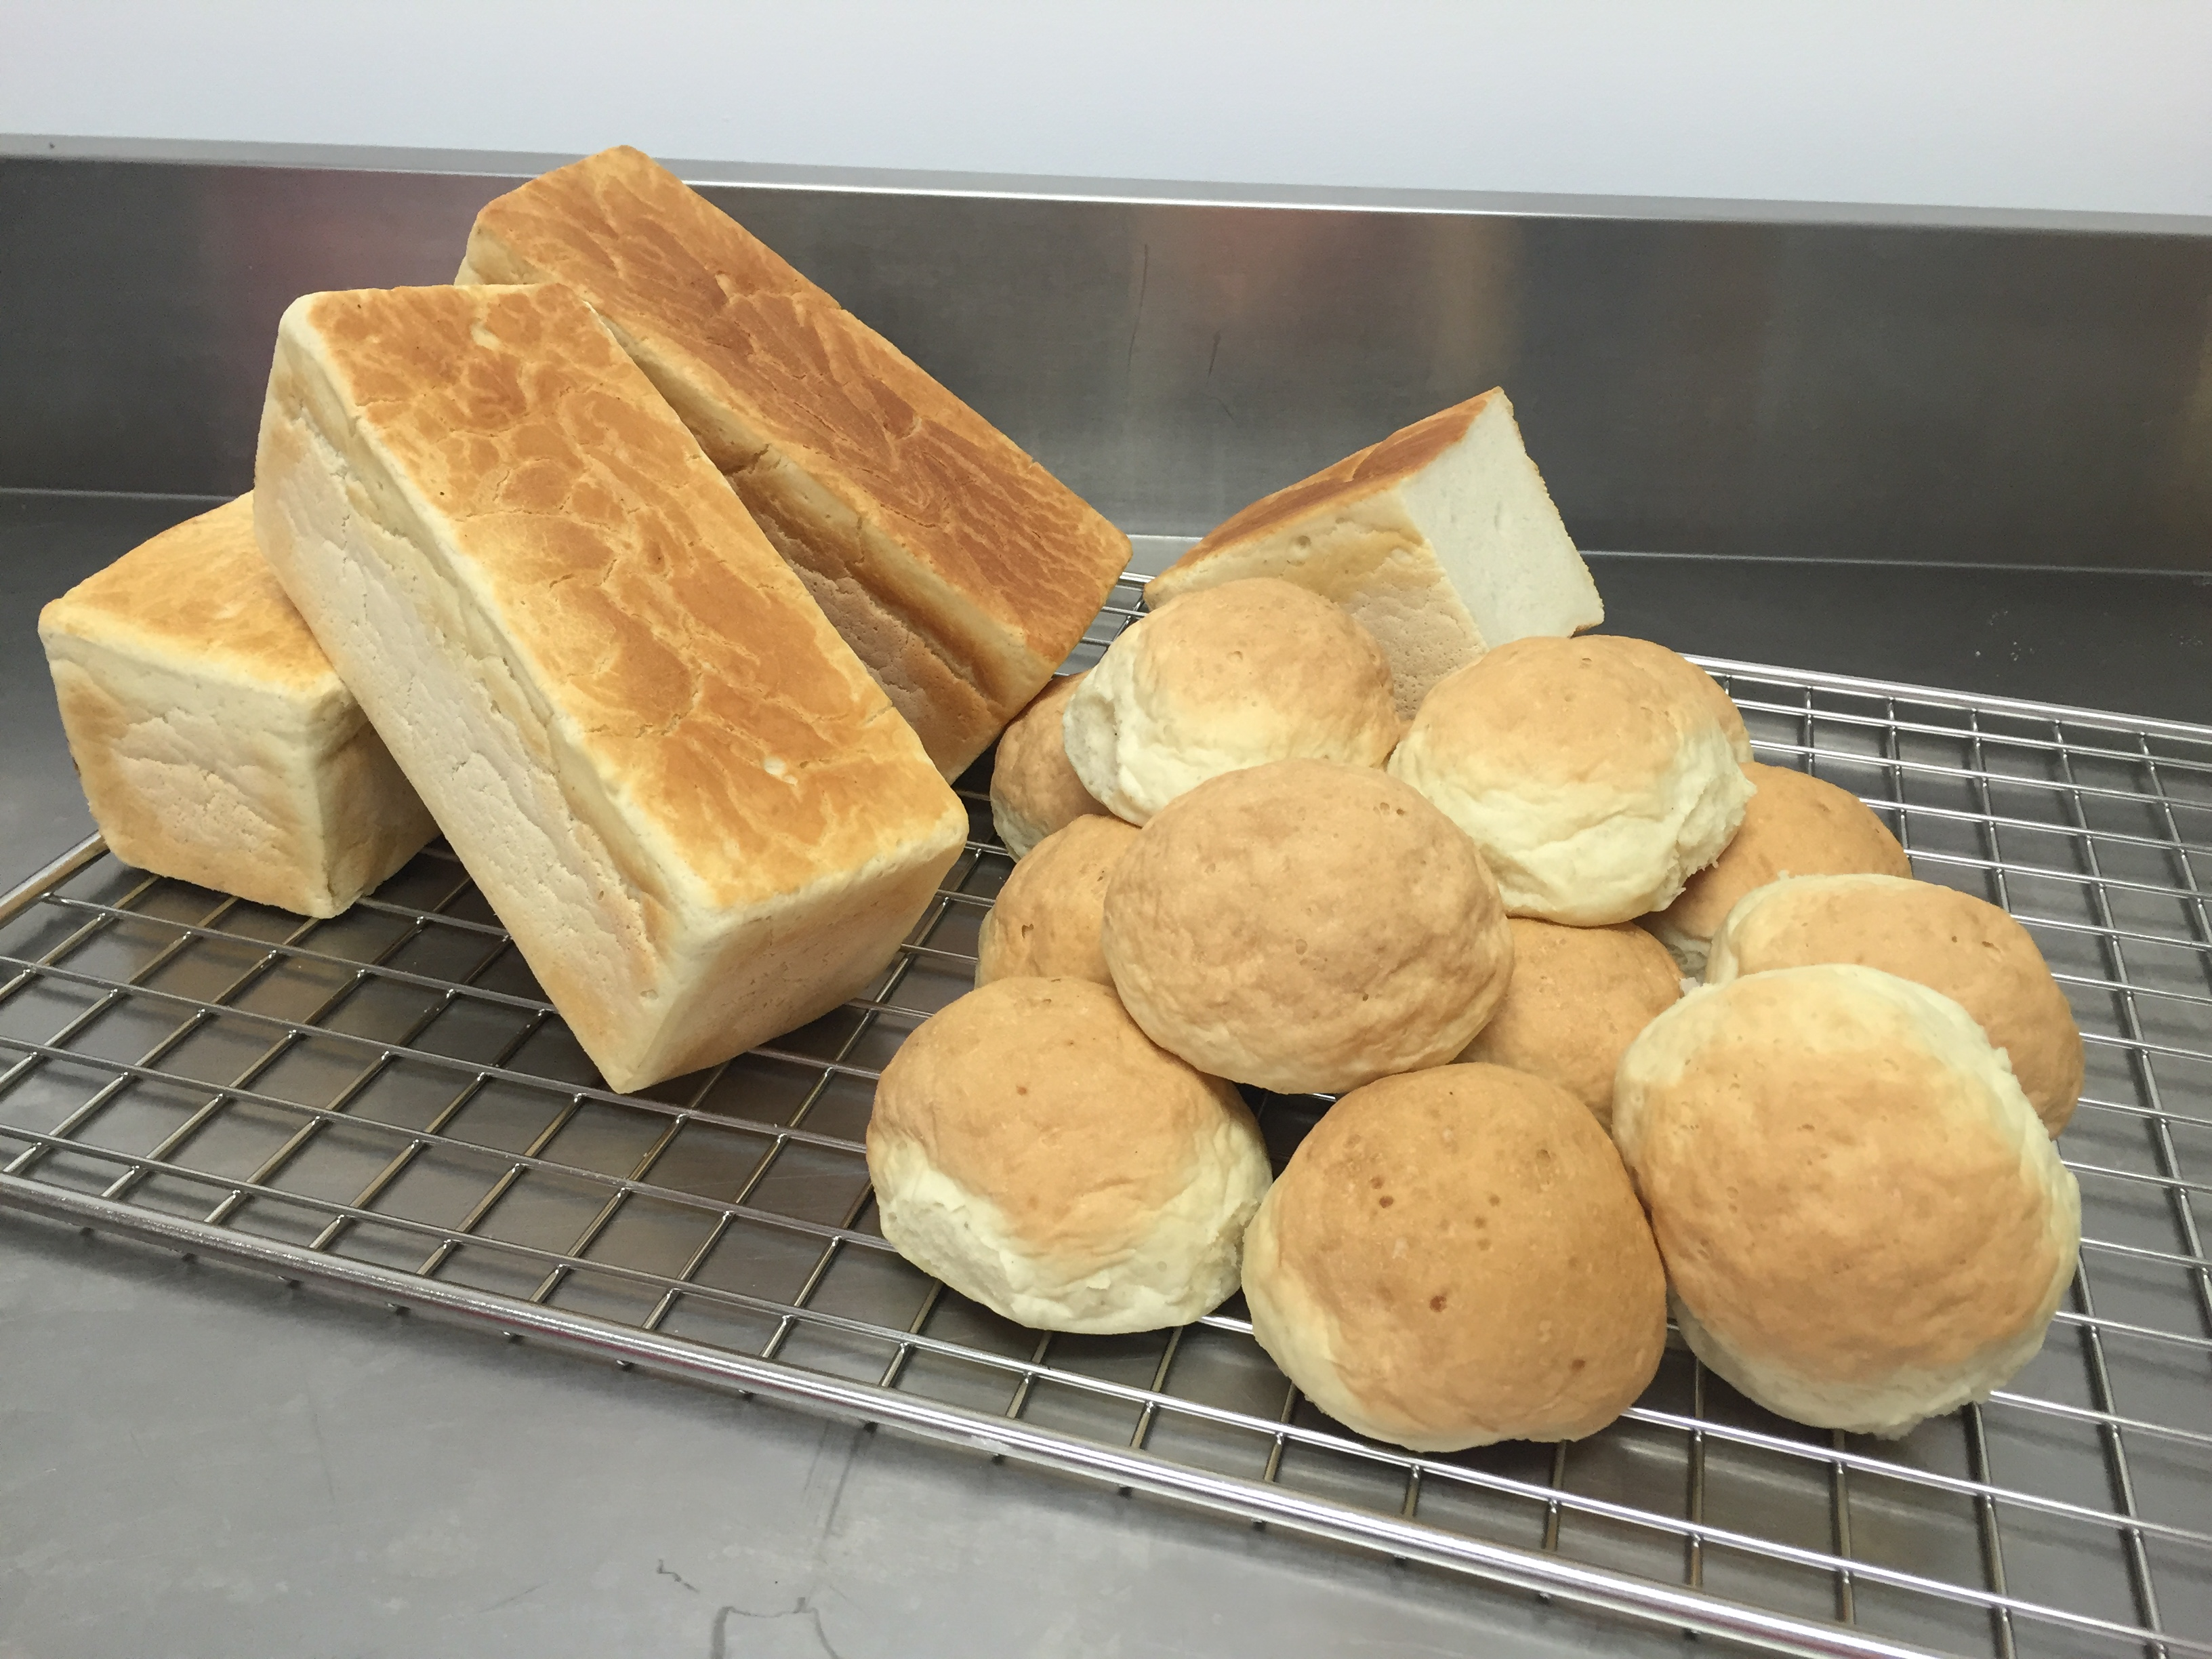 Soft white gluten free bread slices with ease at Artizan Gluten Free Bakery Rockhampton